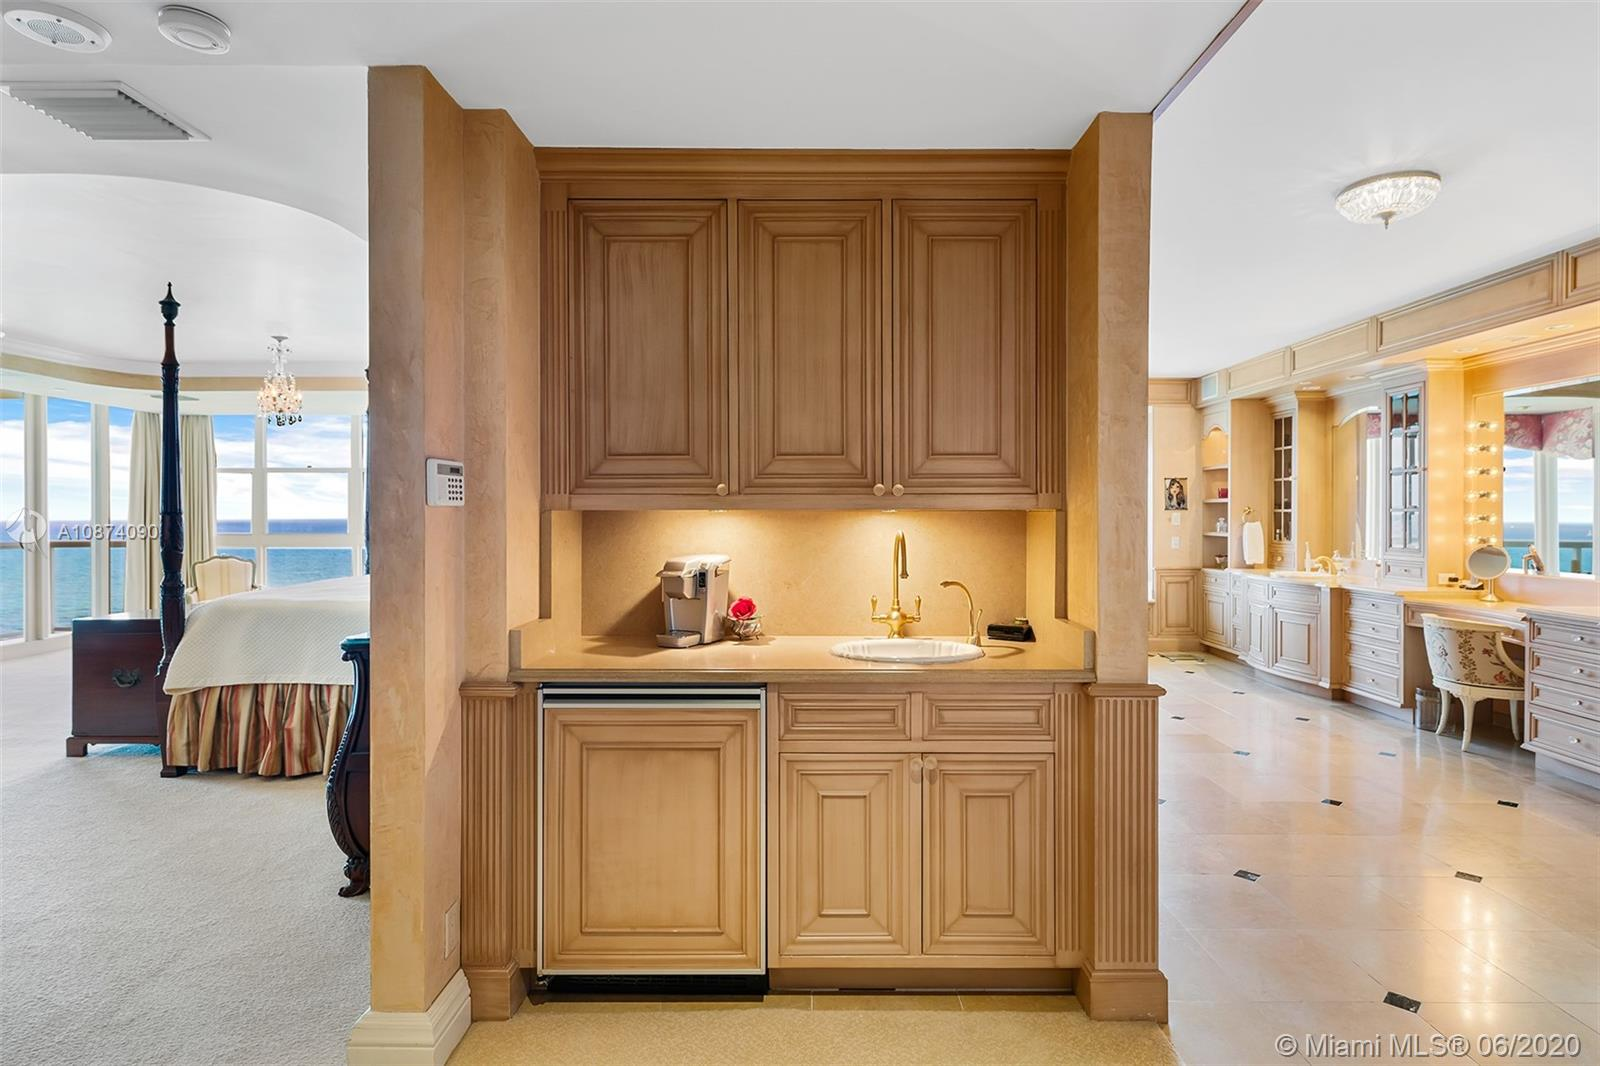 Photo of 6051 Ocean Dr #PH5, Hollywood, Florida, 33019 - Kitchenette in master bedroom suite